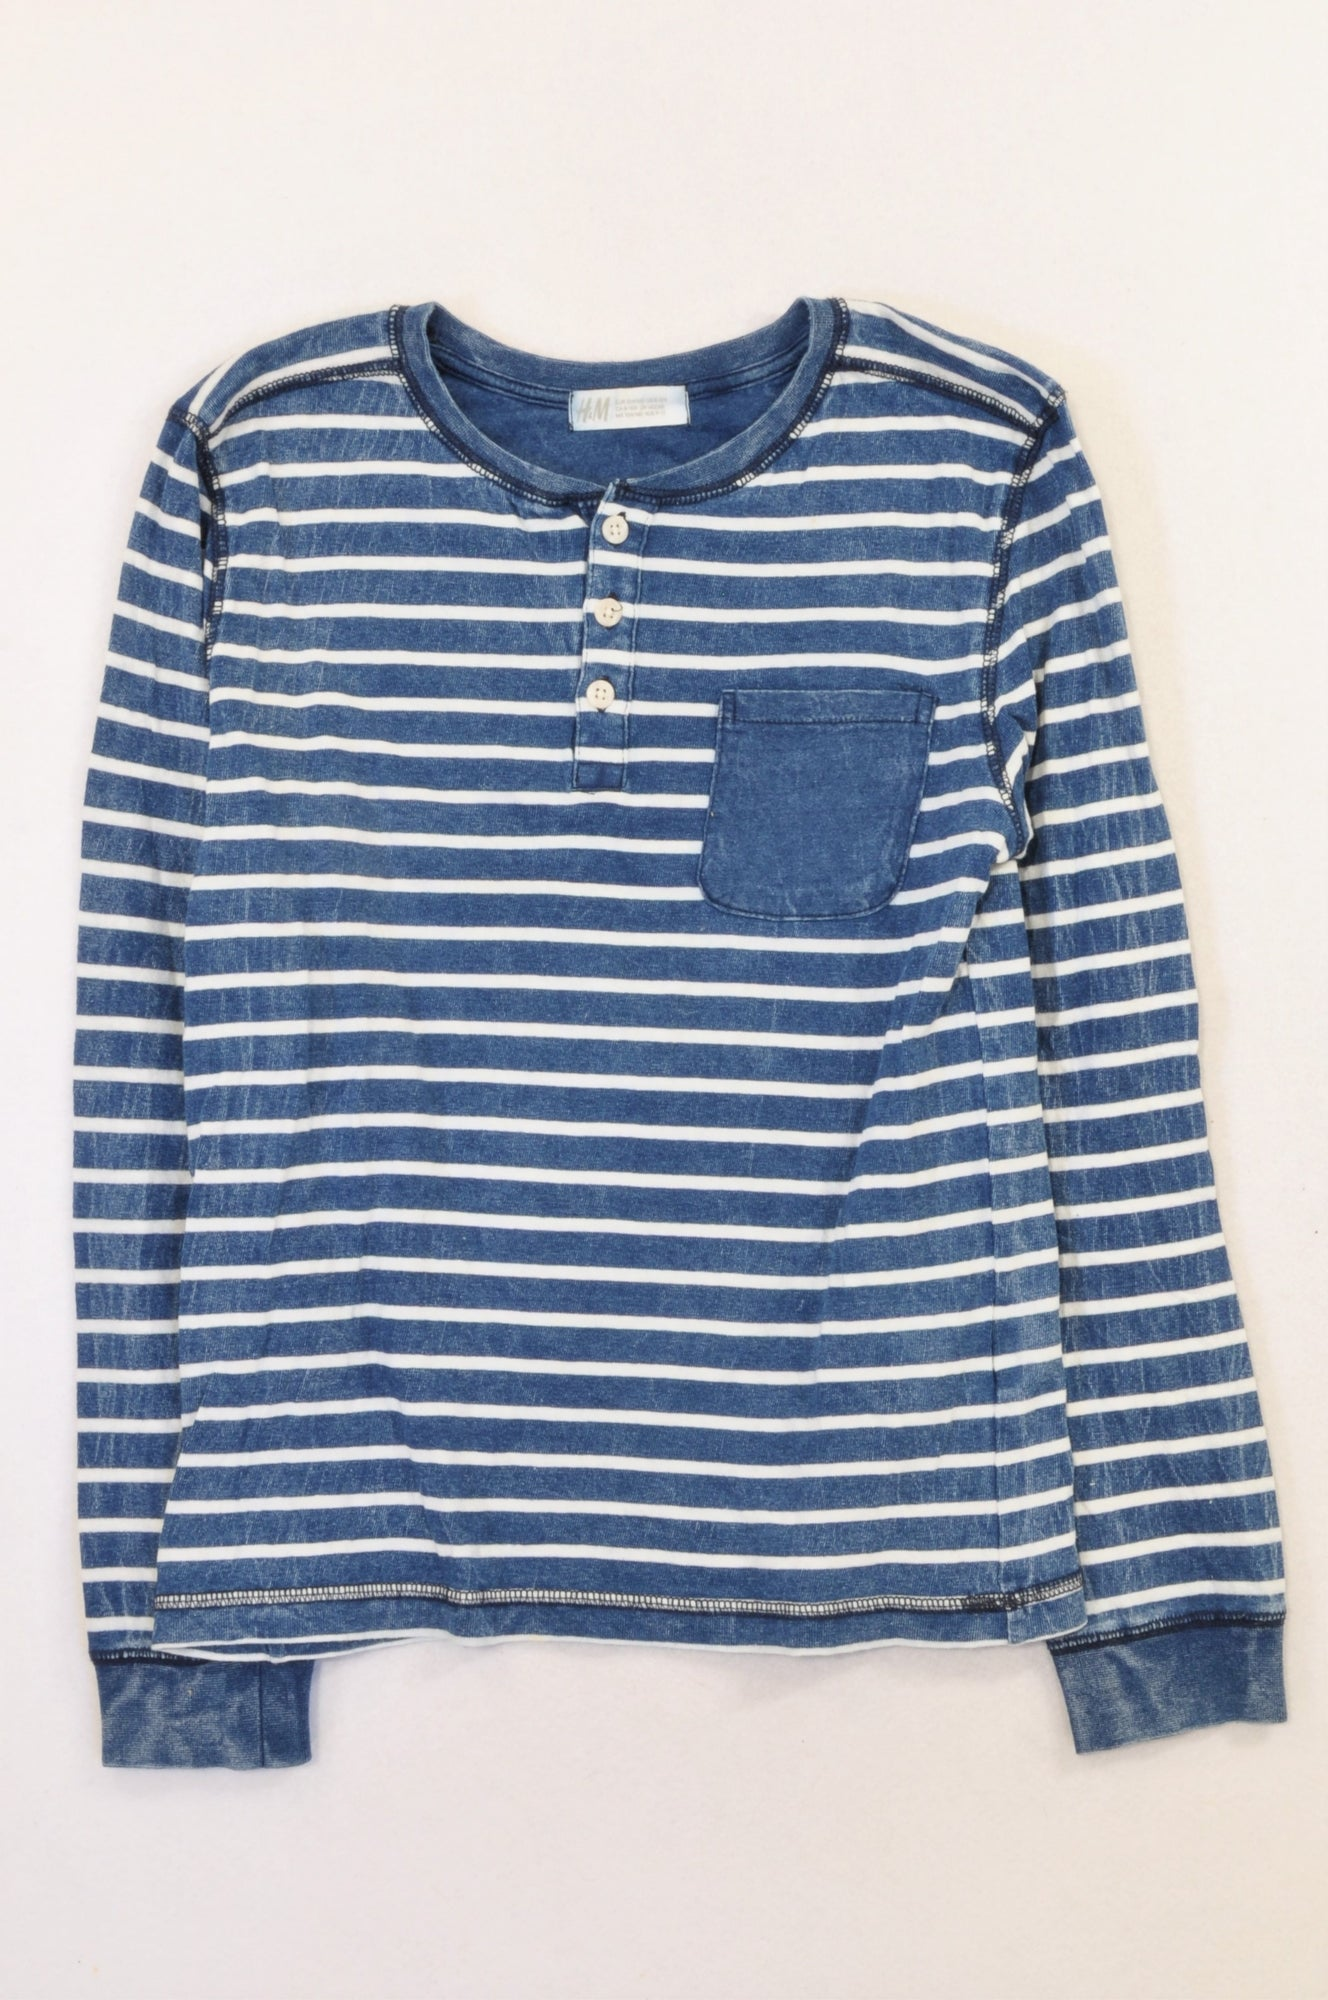 H&M Blue & White Stripe Pocket Henley T-shirt Boys 8-10 years